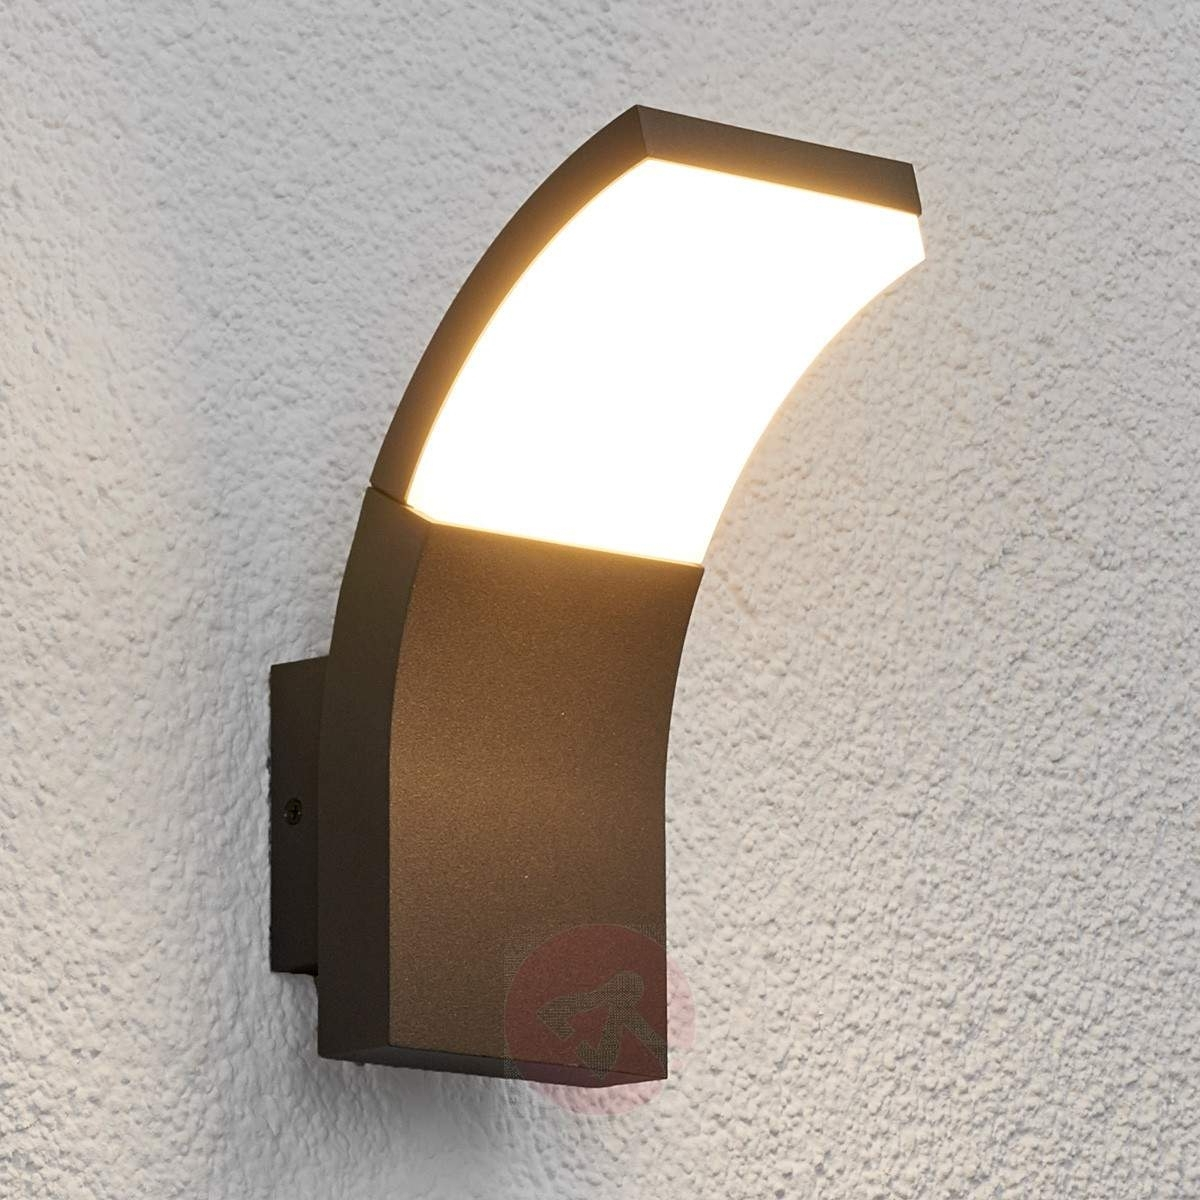 Popular Led Outdoor Wall Light Timm Lights Co Uk Brilliant Led In 4 Regarding Outdoor Led Wall Lighting (View 13 of 20)